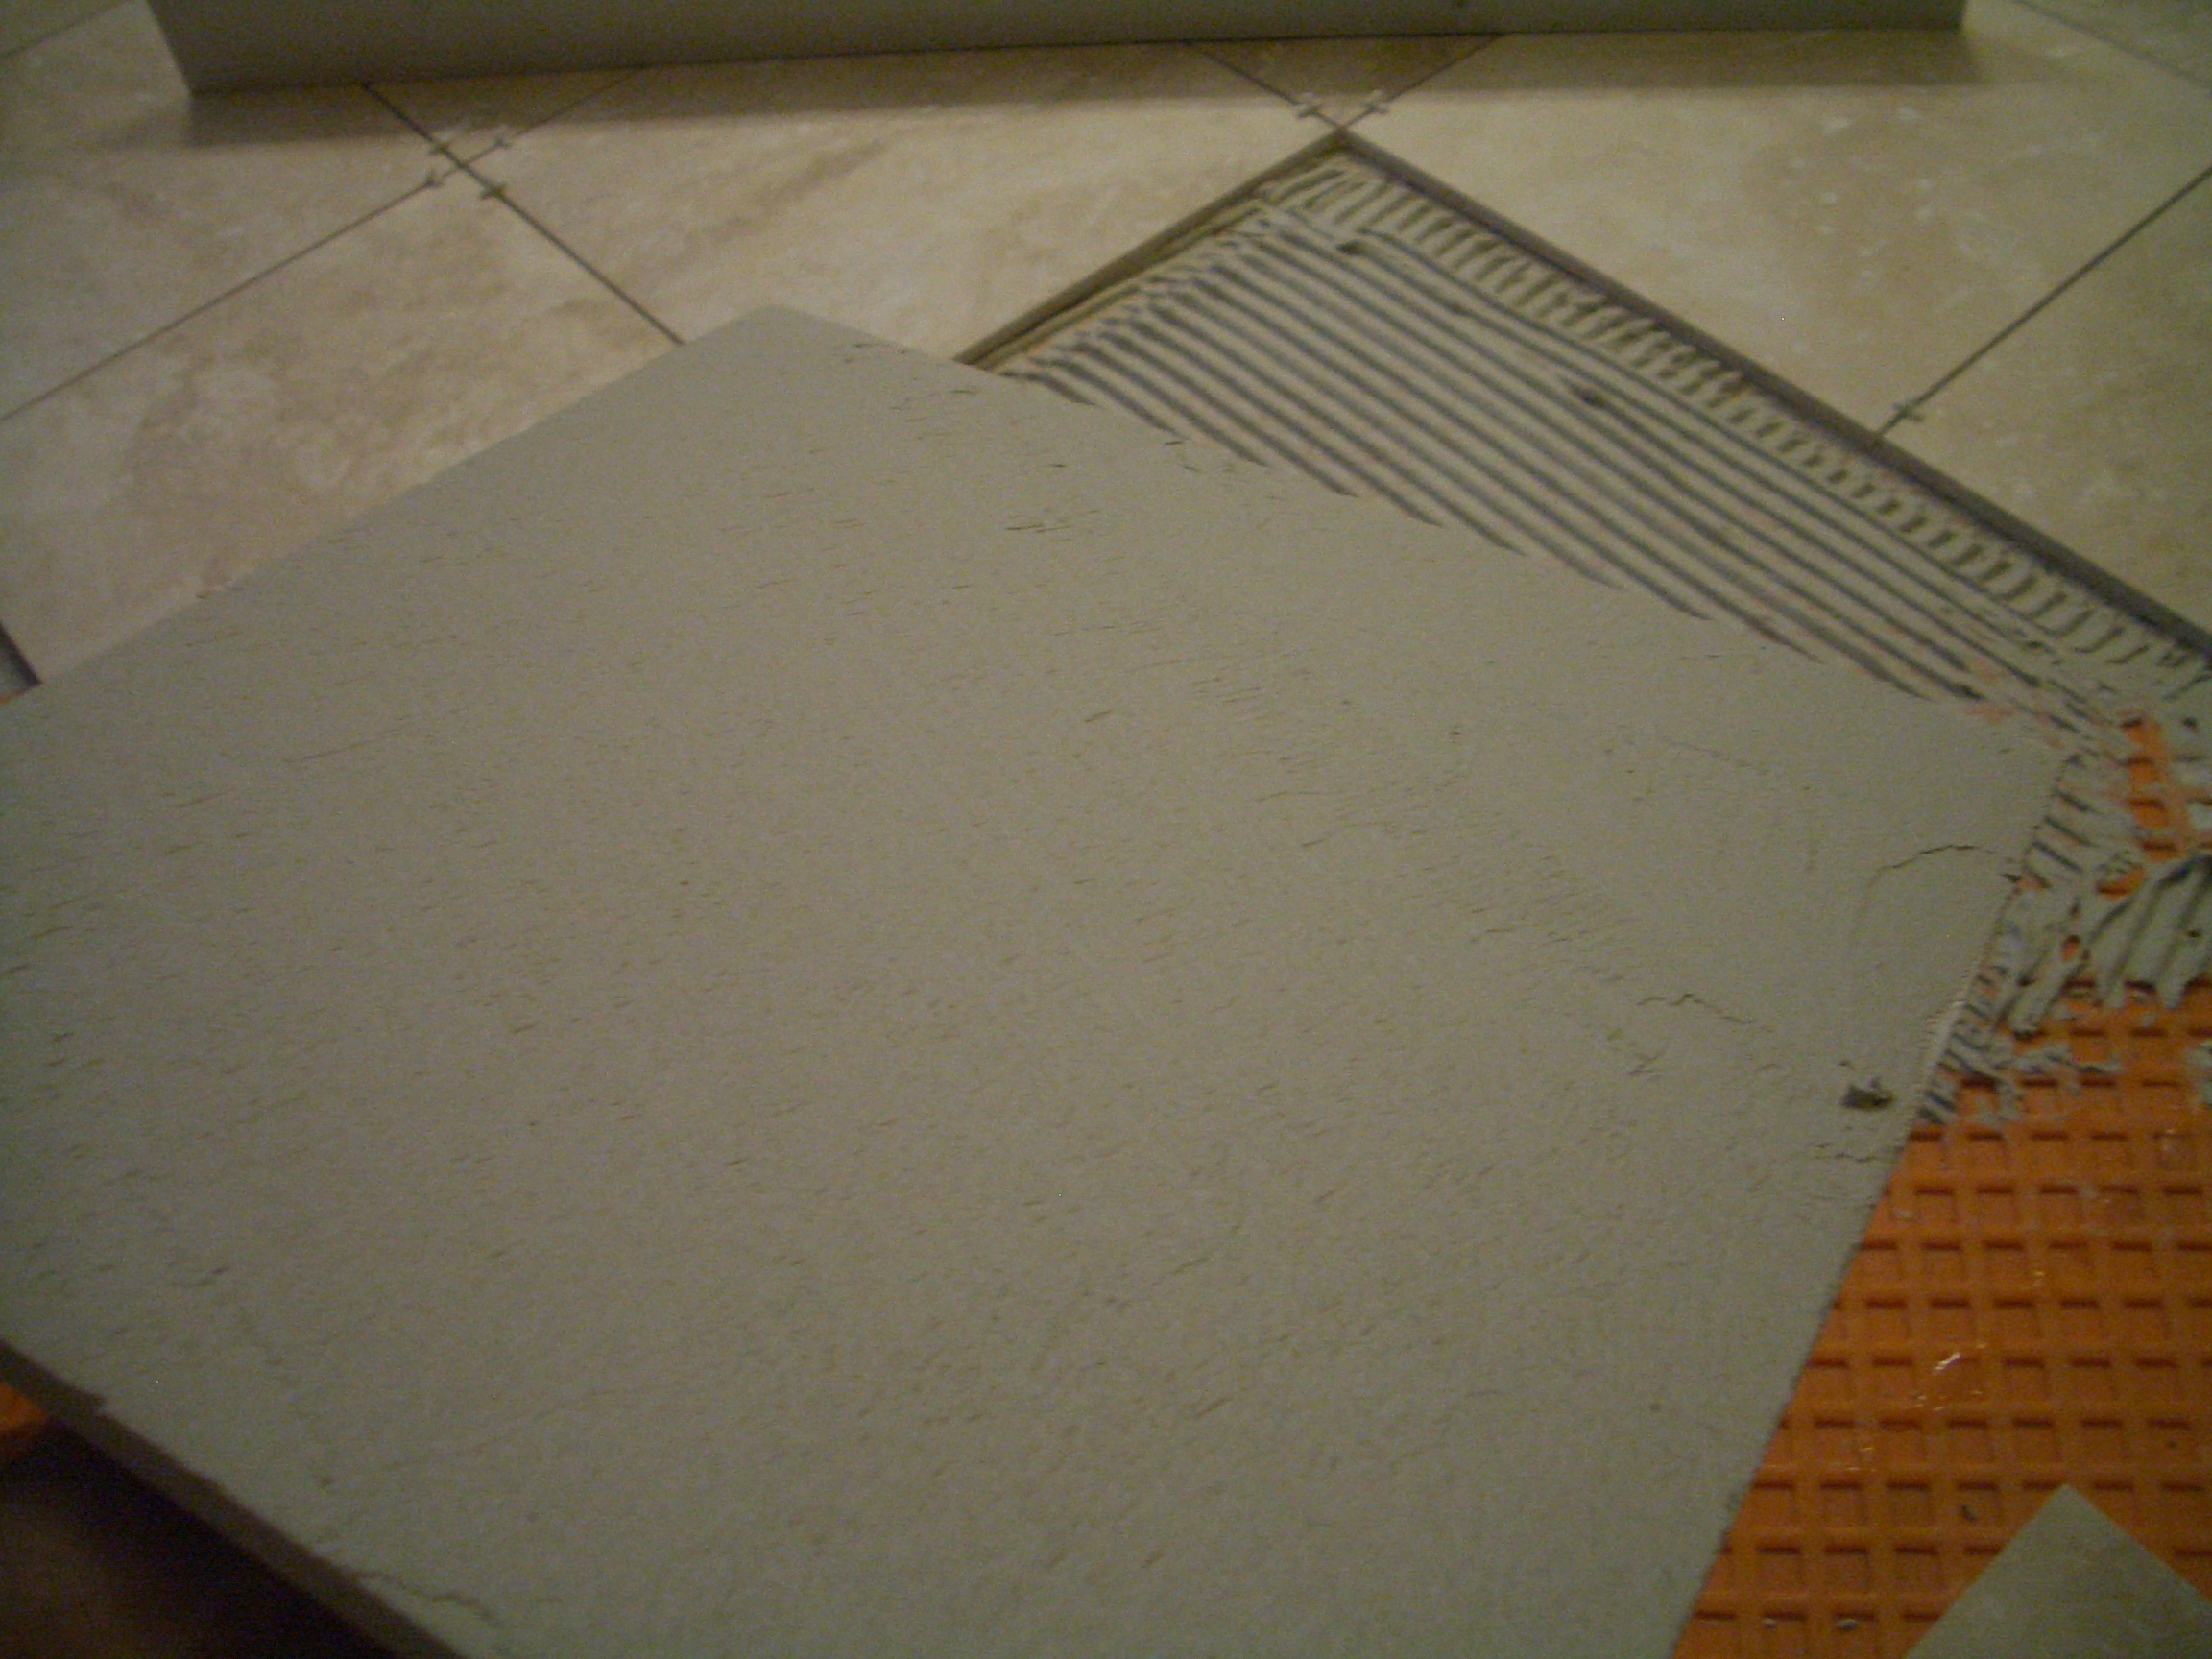 How to install absolutely flat floor tile backbuttered travertine tile completely filled dailygadgetfo Choice Image